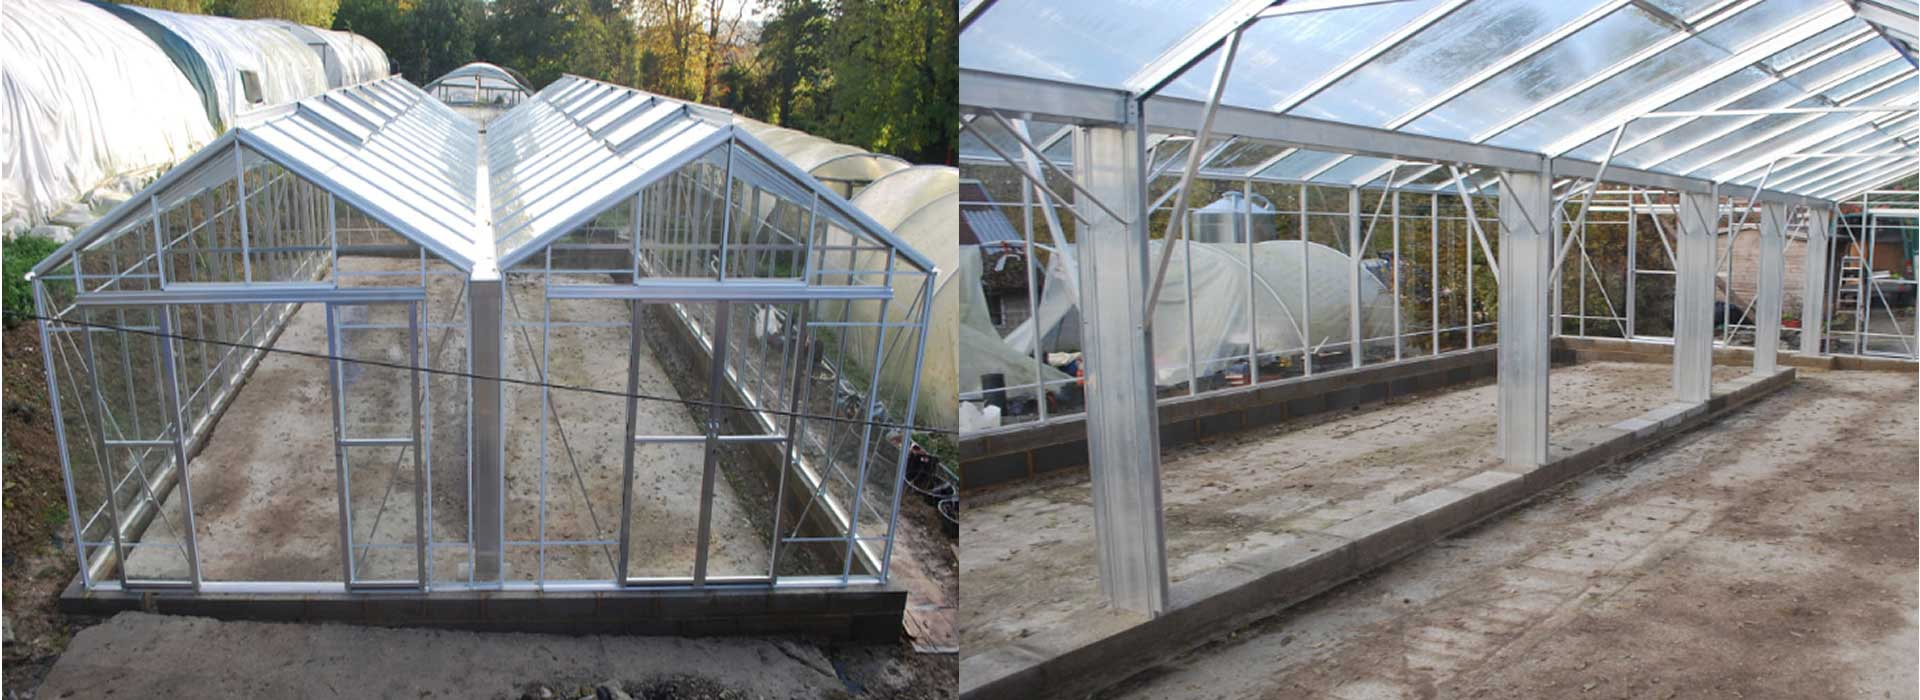 Robinsons Rosette Reach Double Span Greenhouses